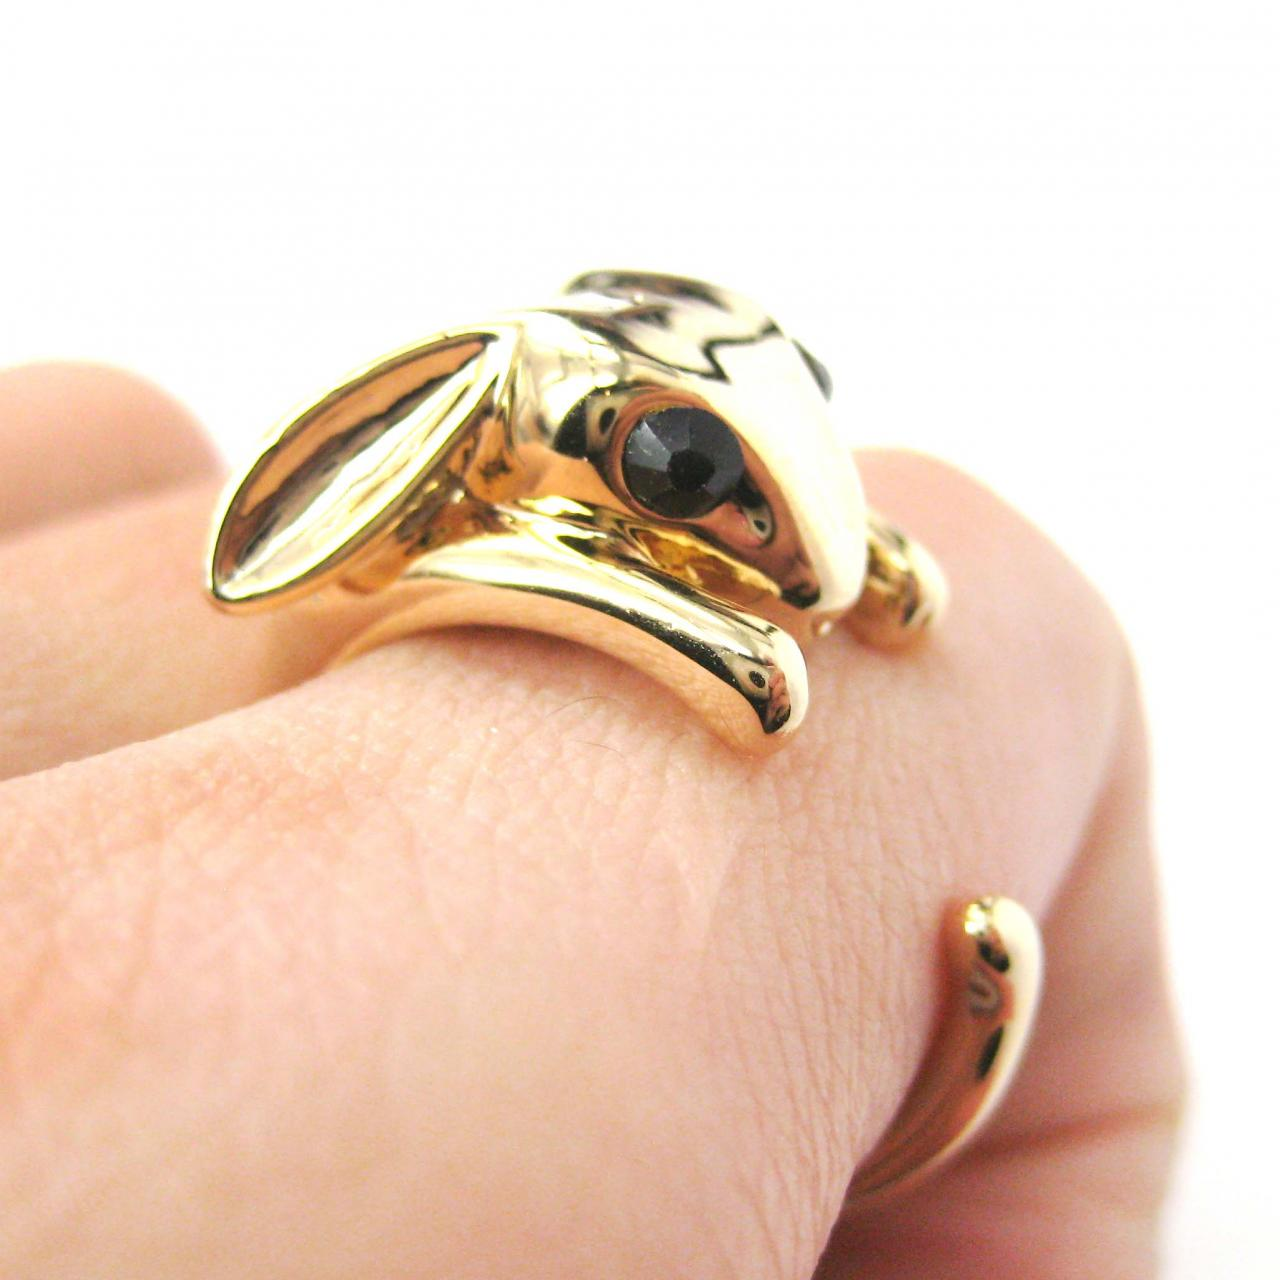 Bunny Rabbit Animal Wrap Ring in Shiny Gold - Sizes 7 to 9 Available